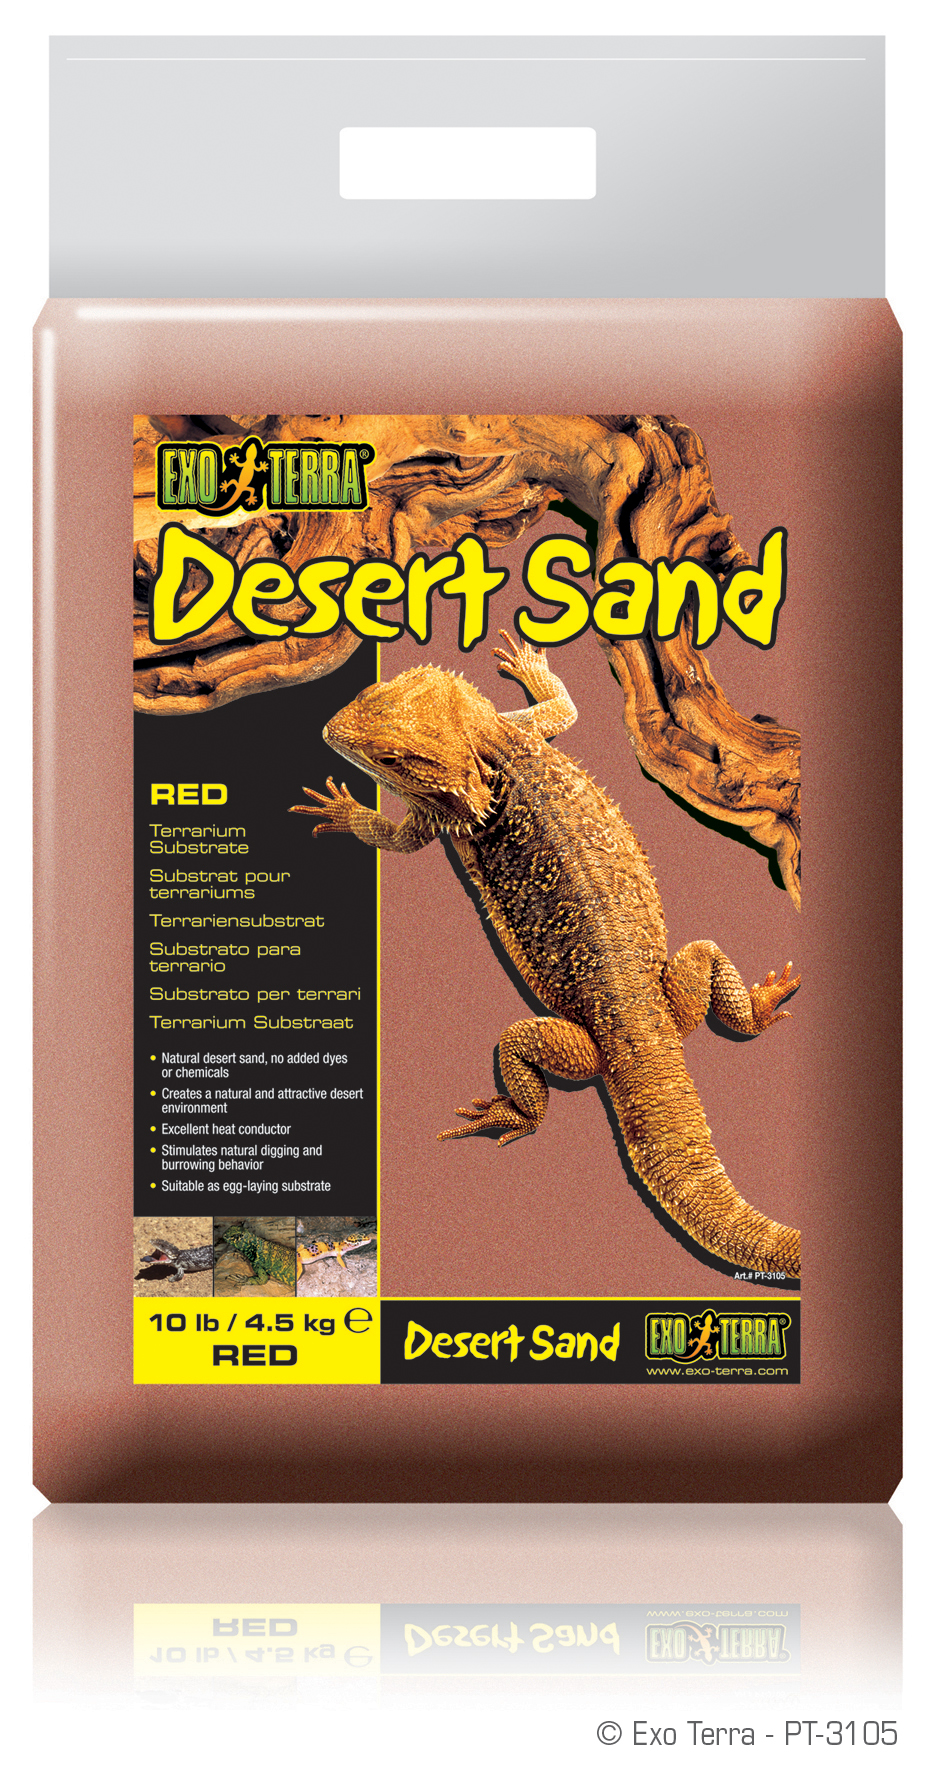 PT3105_Desert_Sand_Red_Packaging.jpg